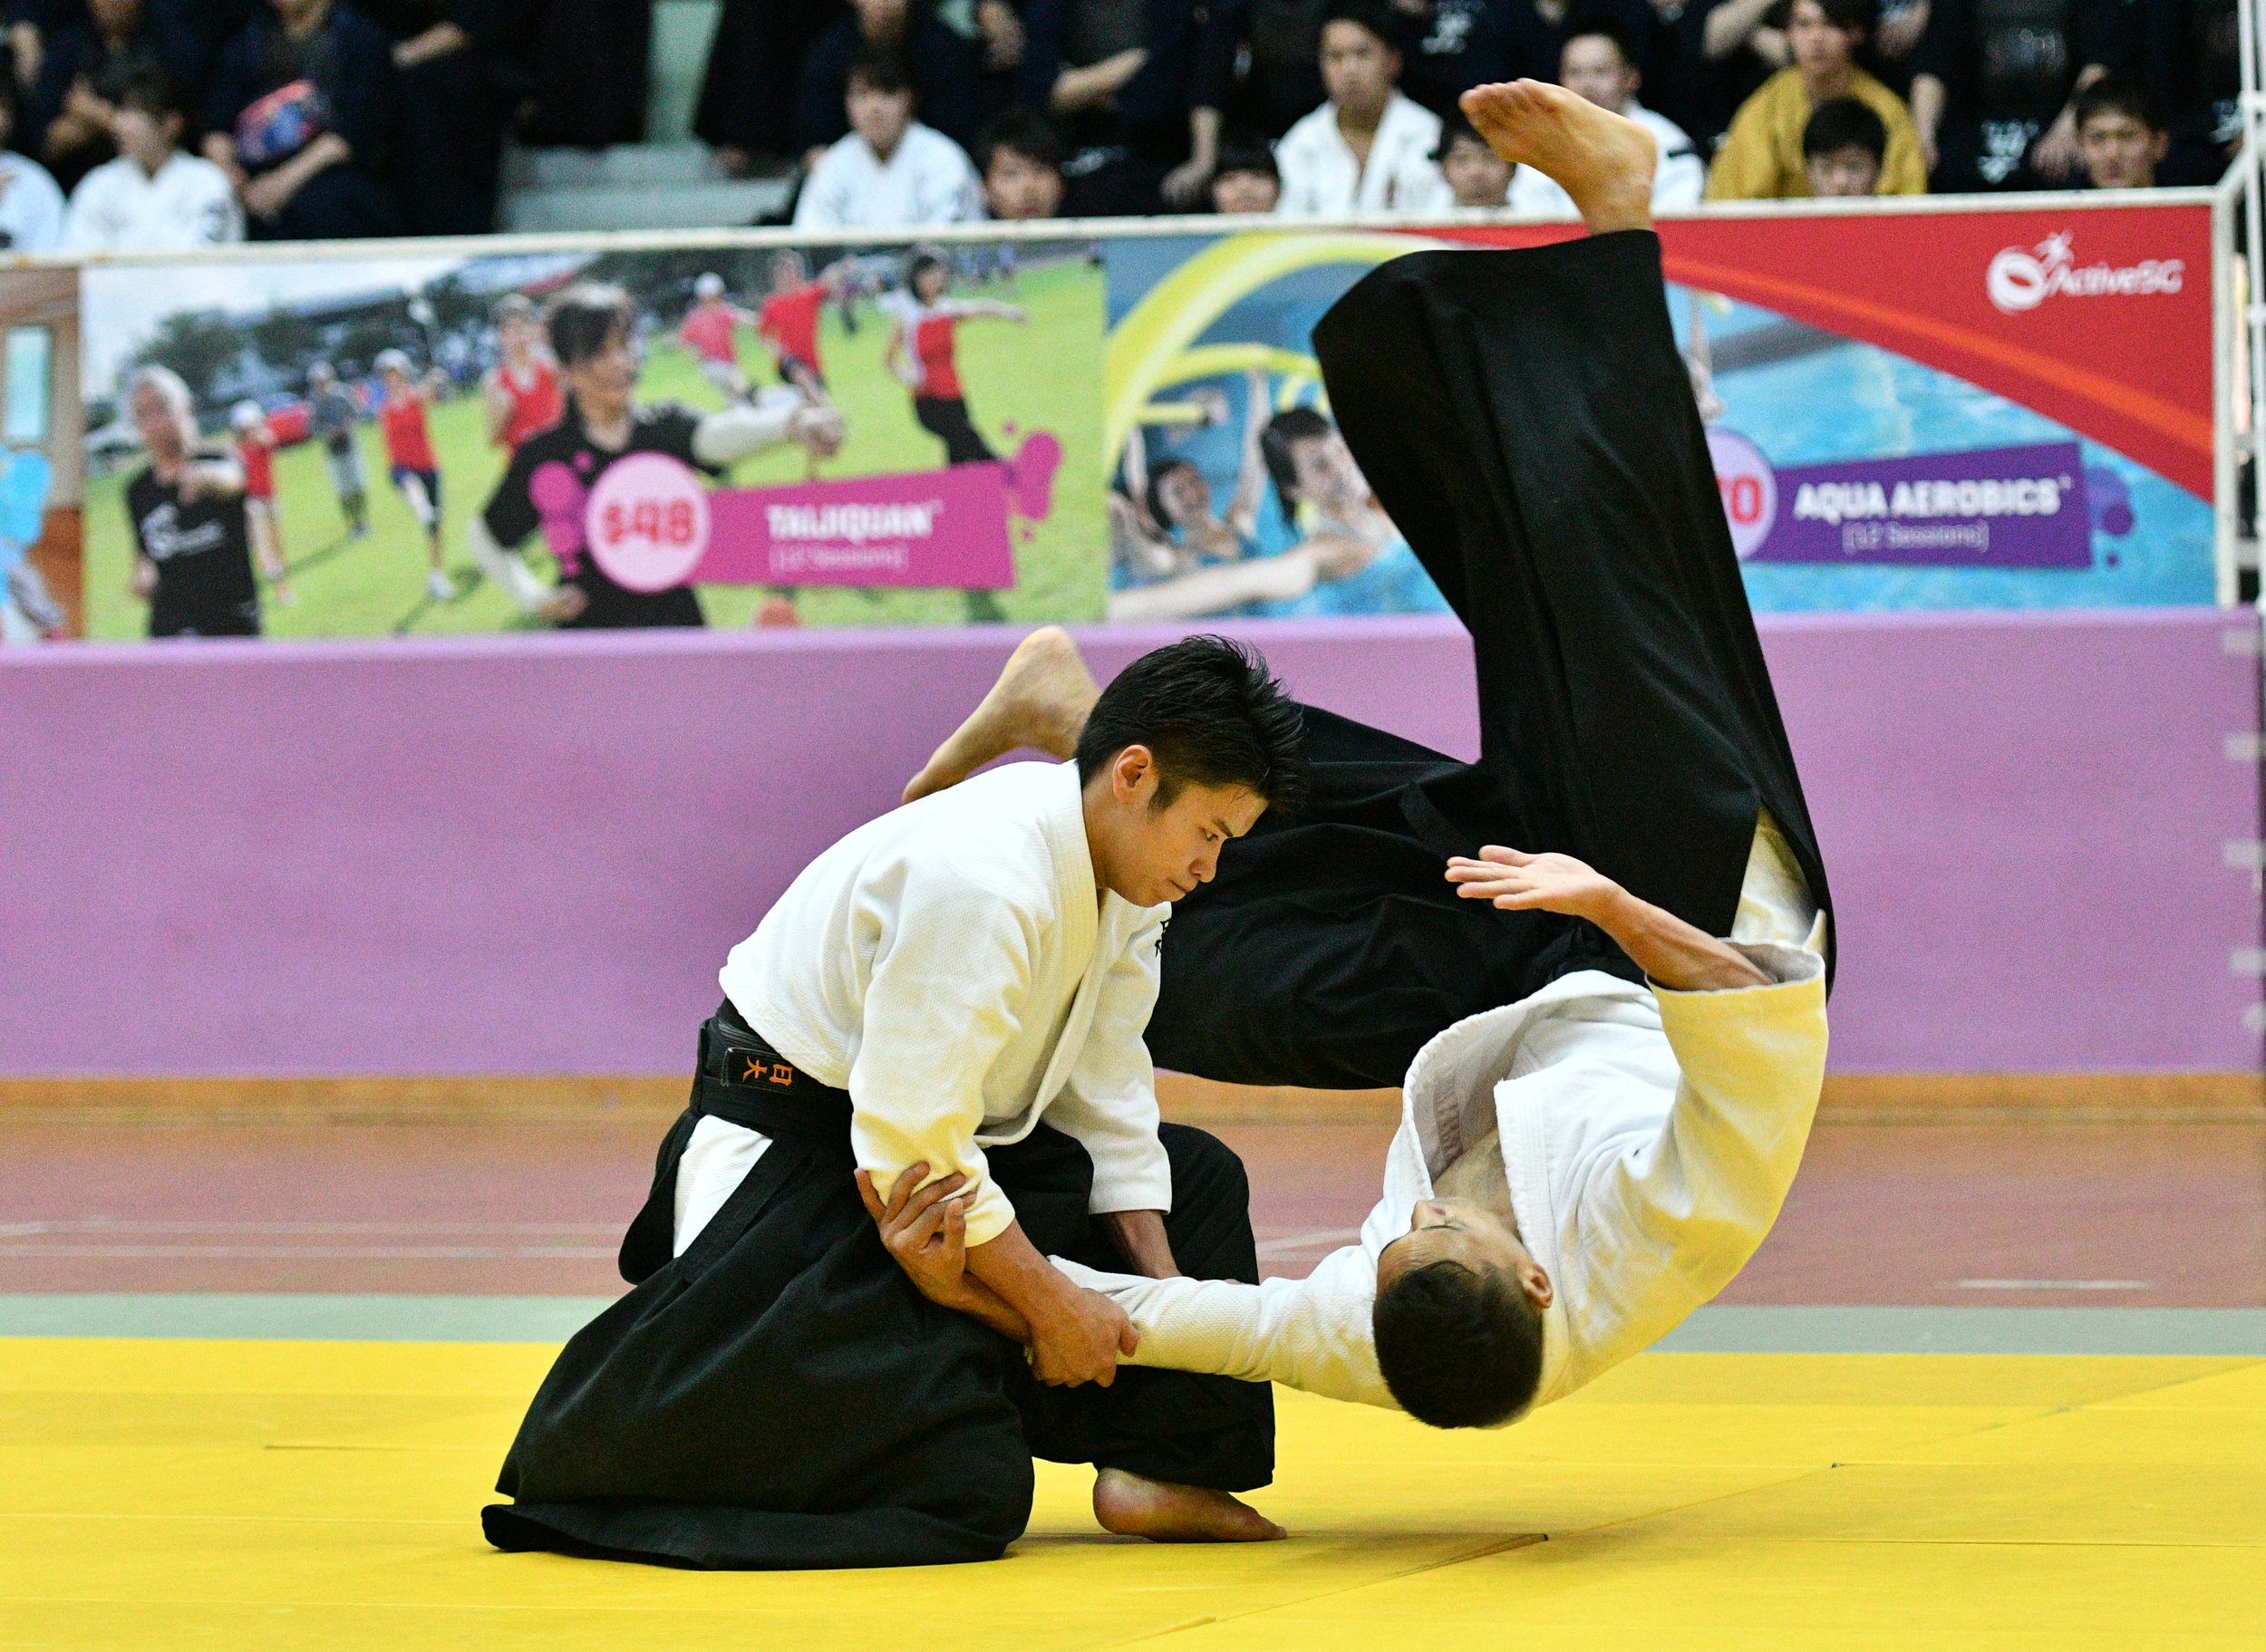 The Aikido segment, one that I was watching very closely.